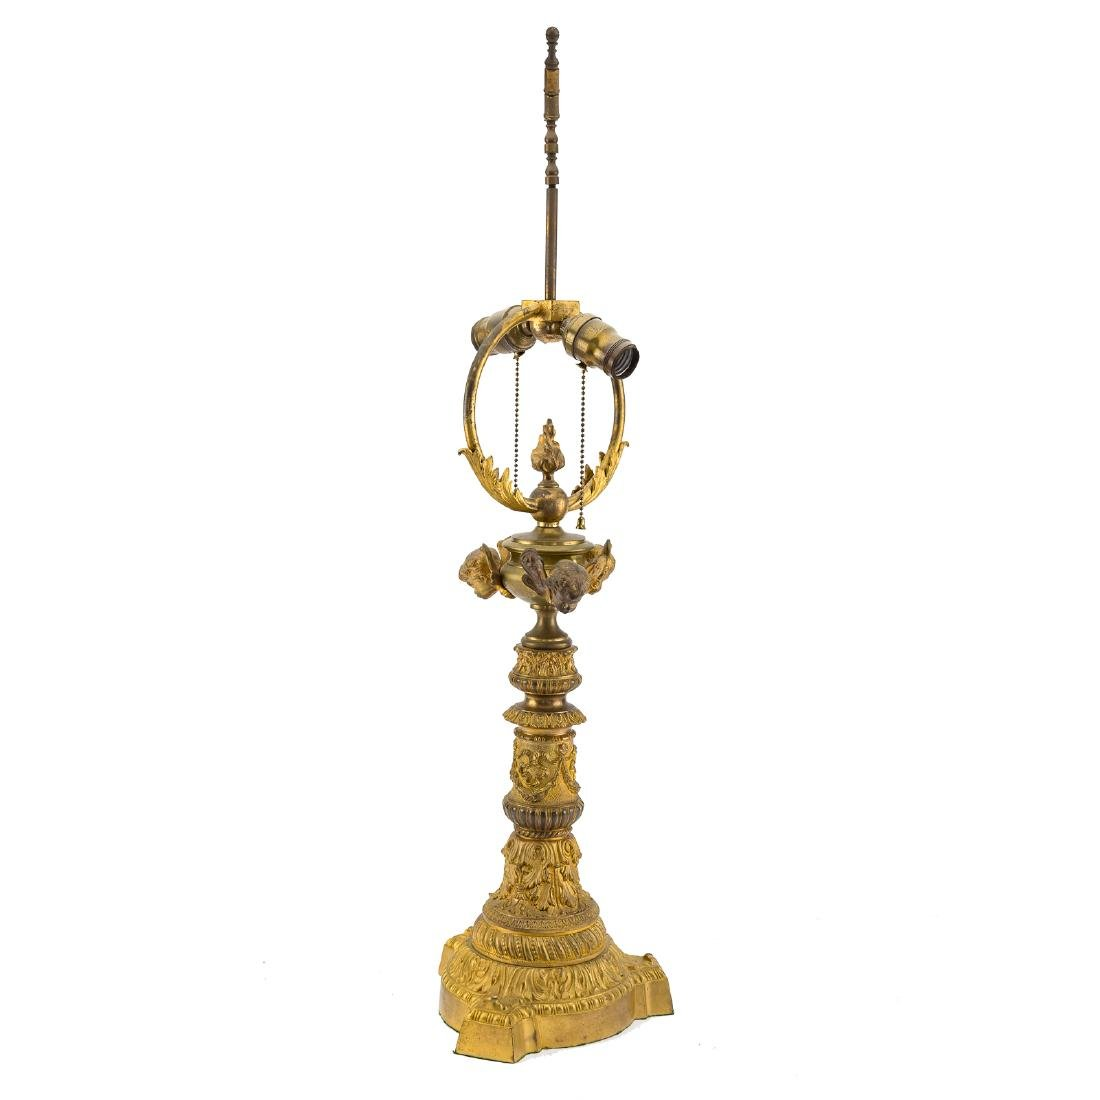 Continental Louis XVI style gilt bronze lamp